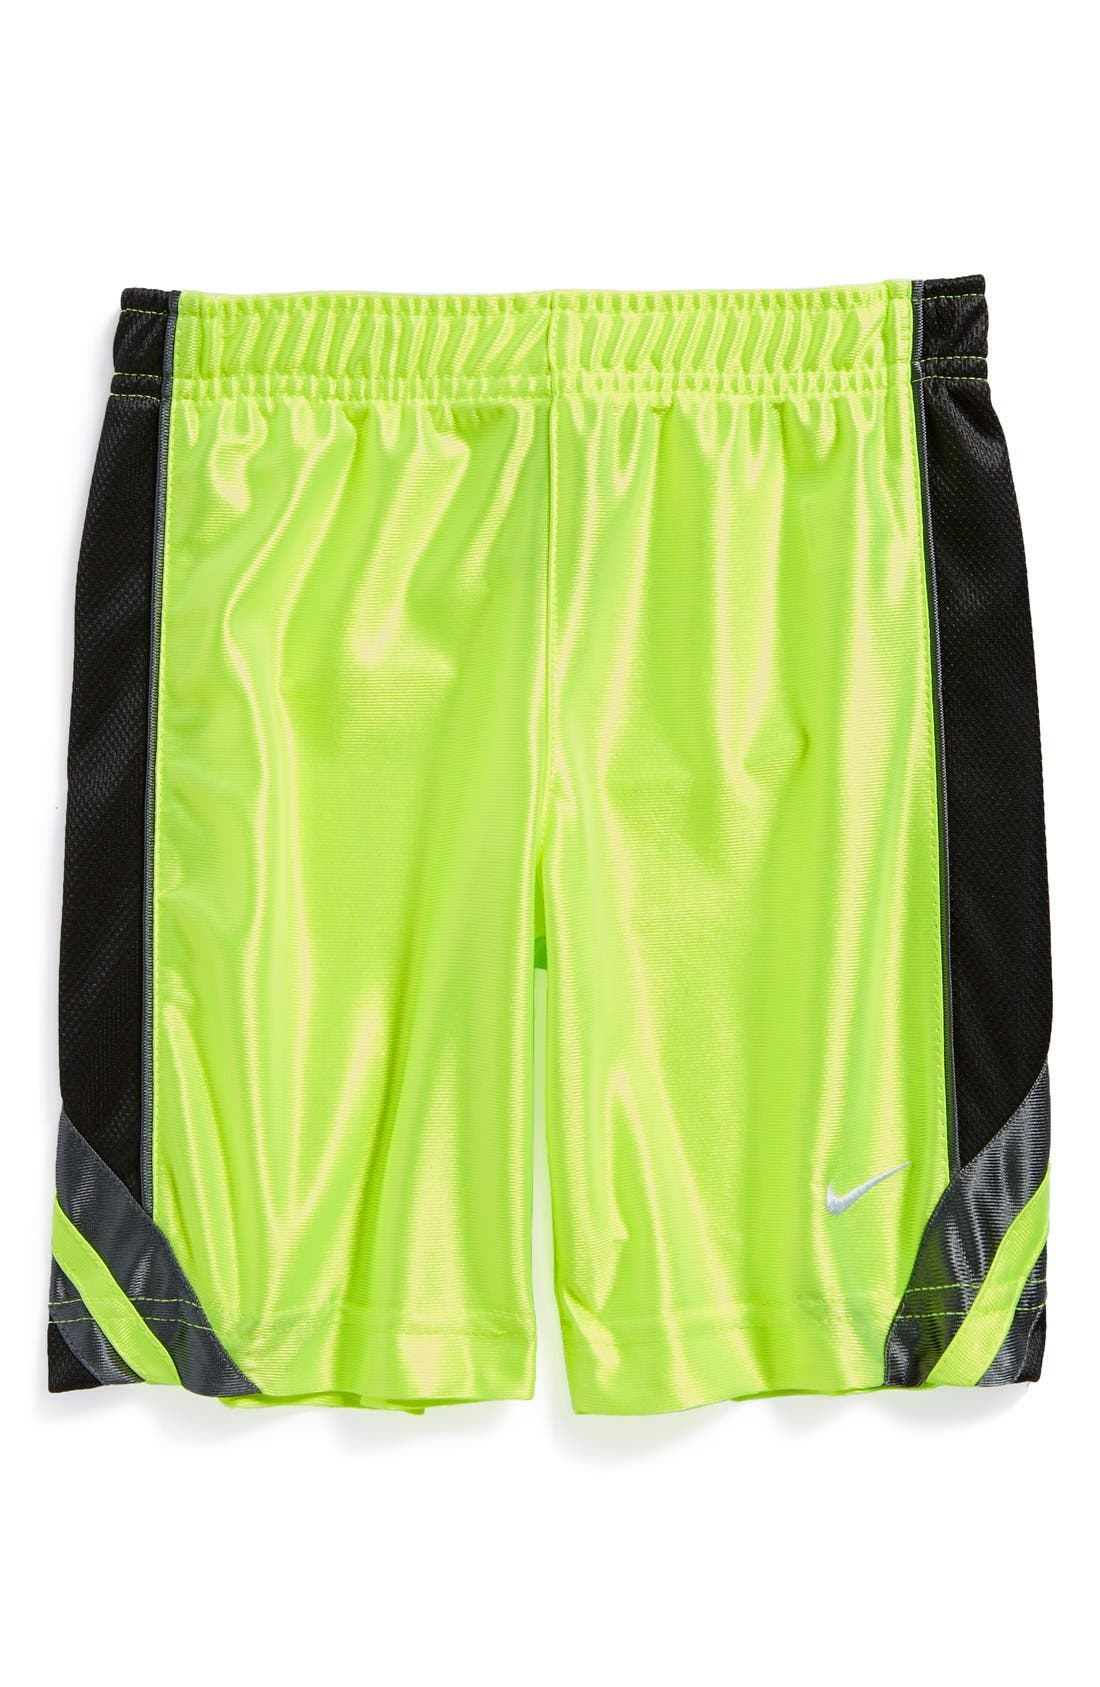 Main Image - Nike 'Dunk V2' Shorts (Little Boys)